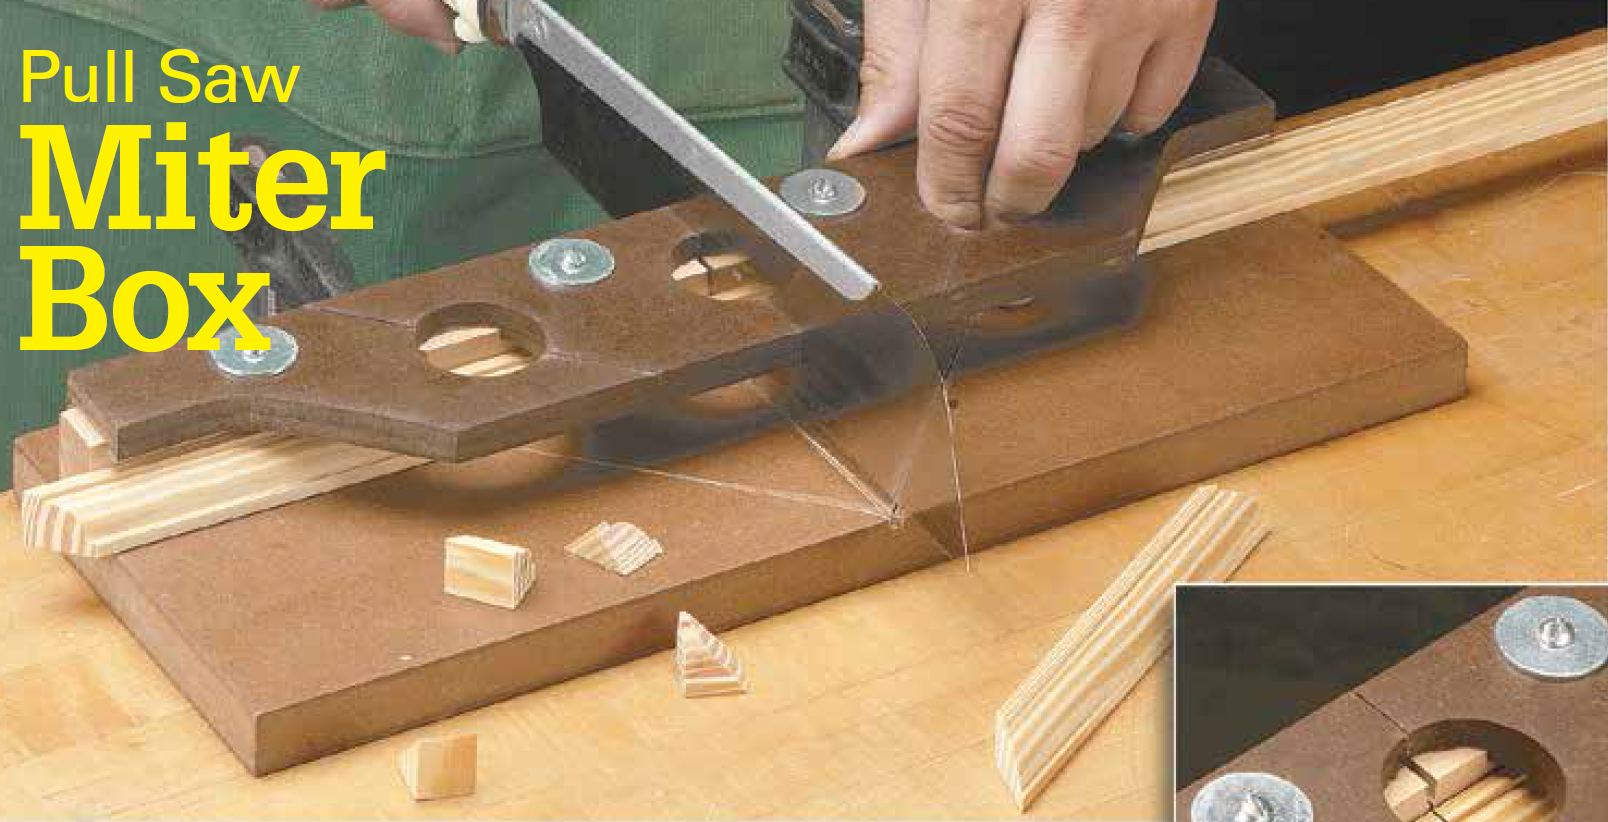 Pull Saw Miter Box Japanese Tools Homemade Tools Woodworking